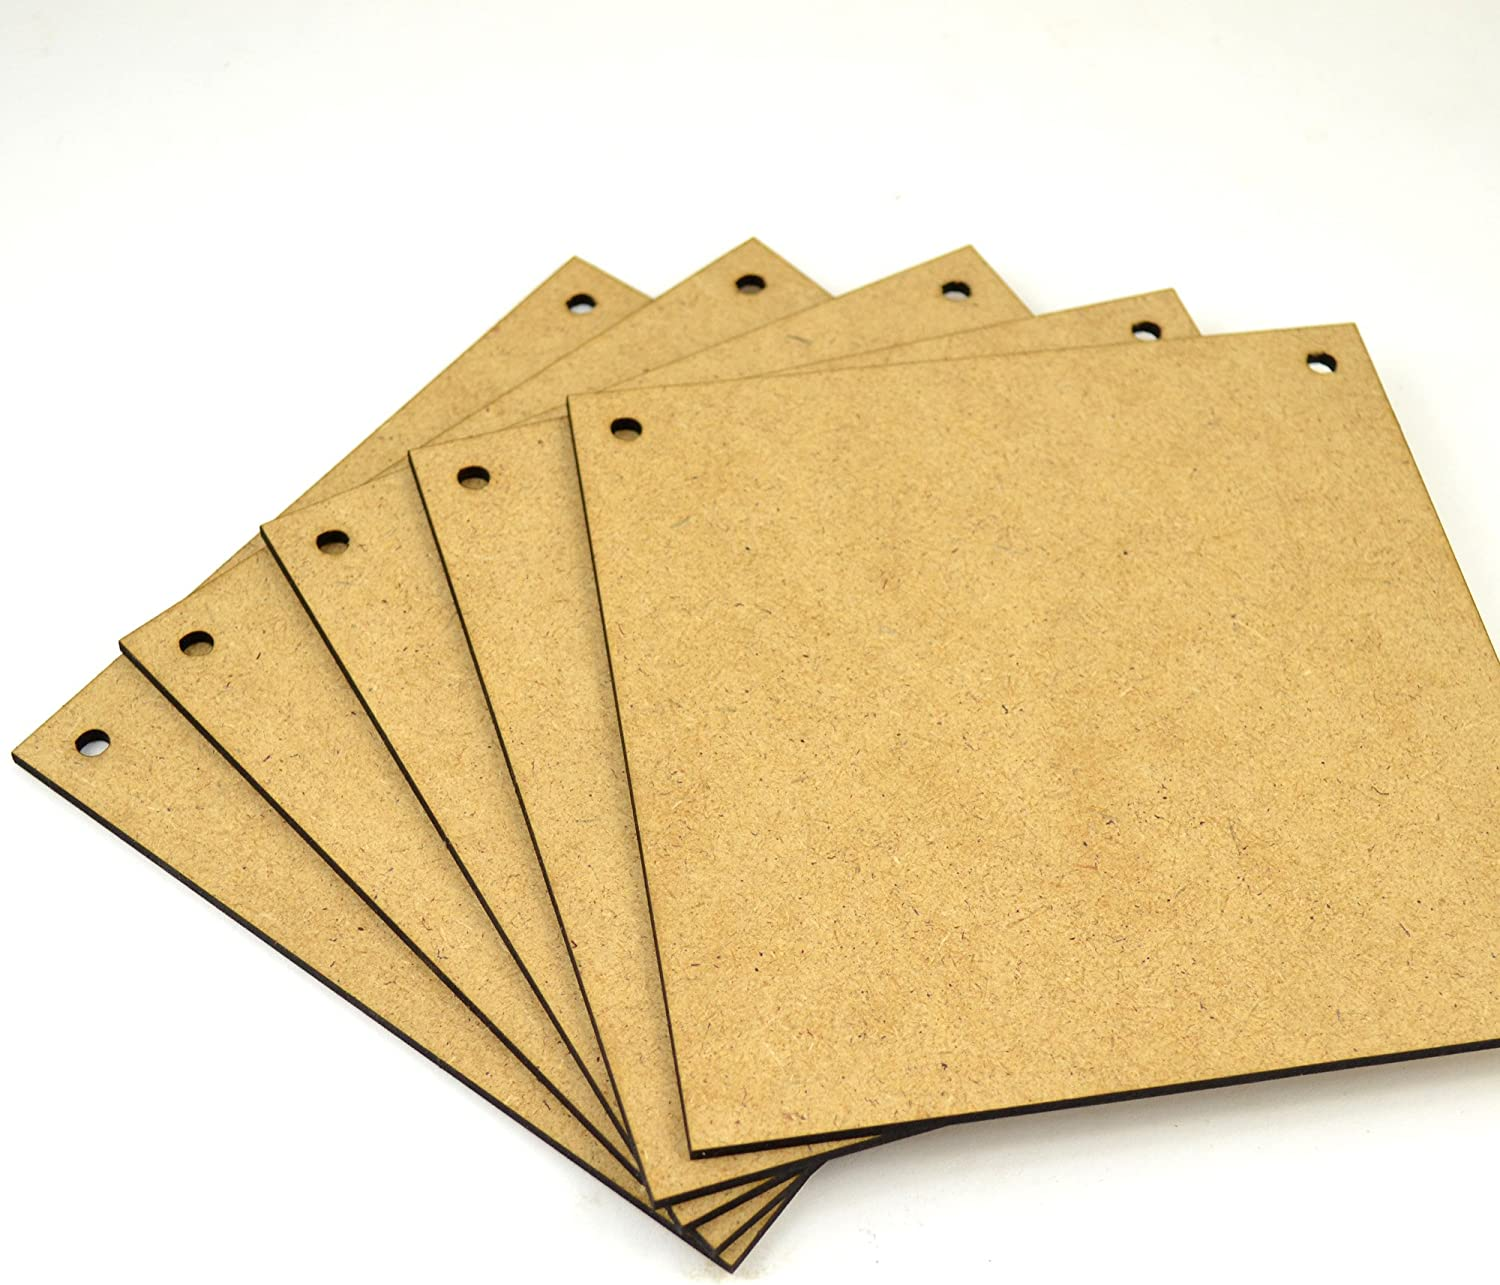 Wooden Square Plaques 20cmx20cm with 2 Holes MDF Wood Sign Craft Blank